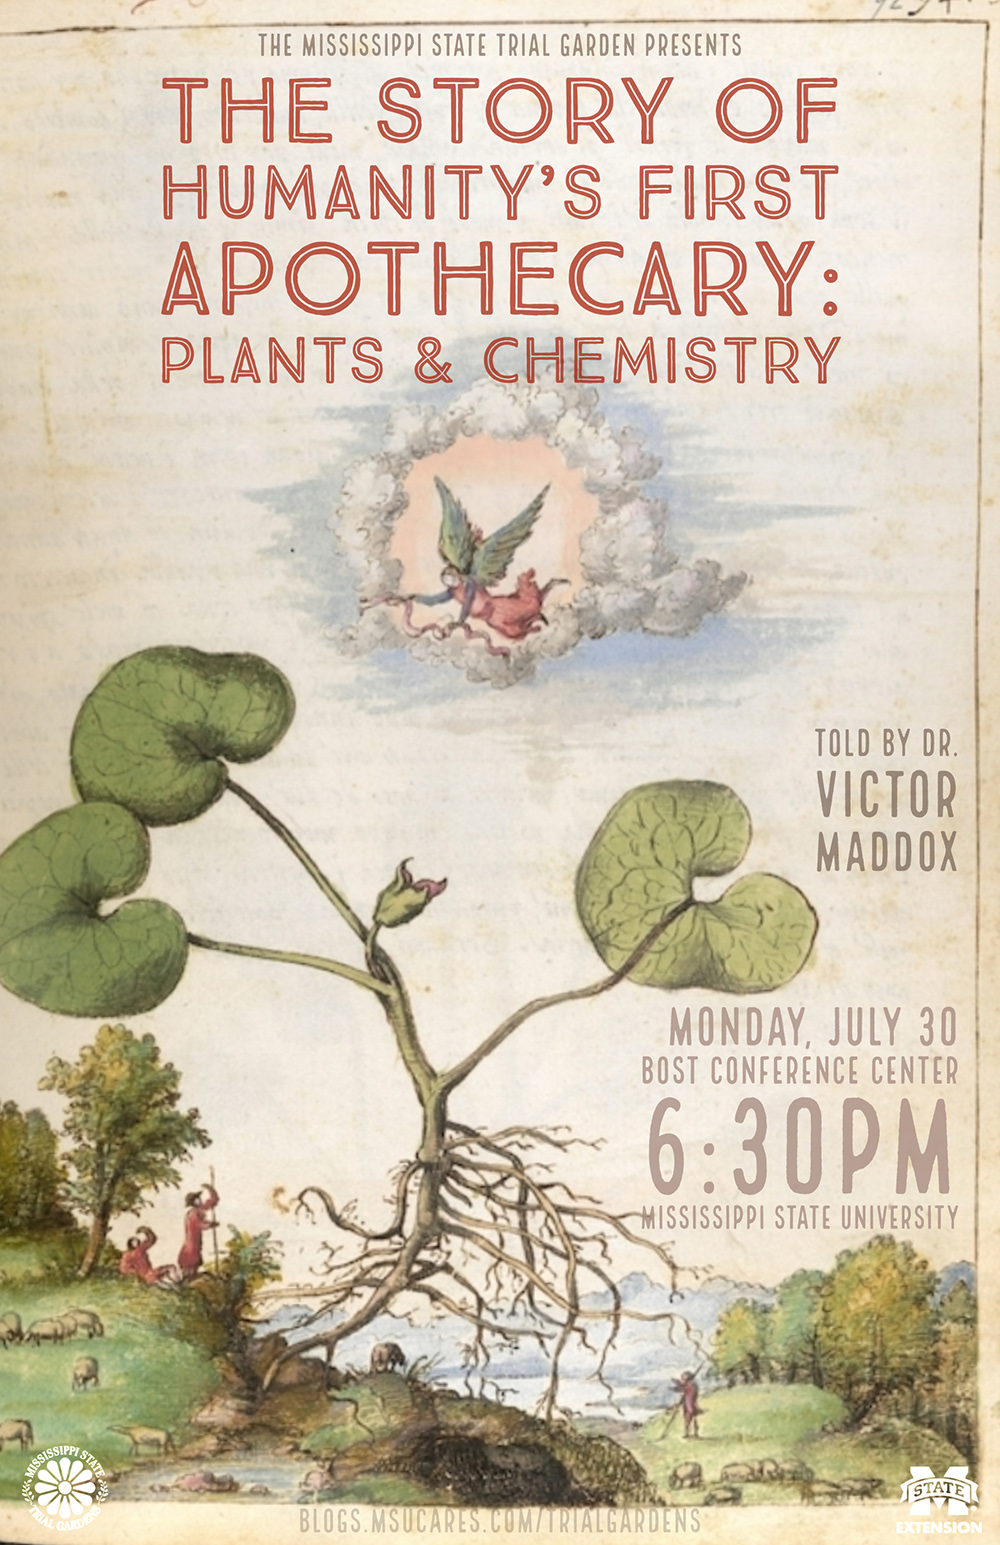 The Story of Humanity's First Apothecary: Plants & Chemistry